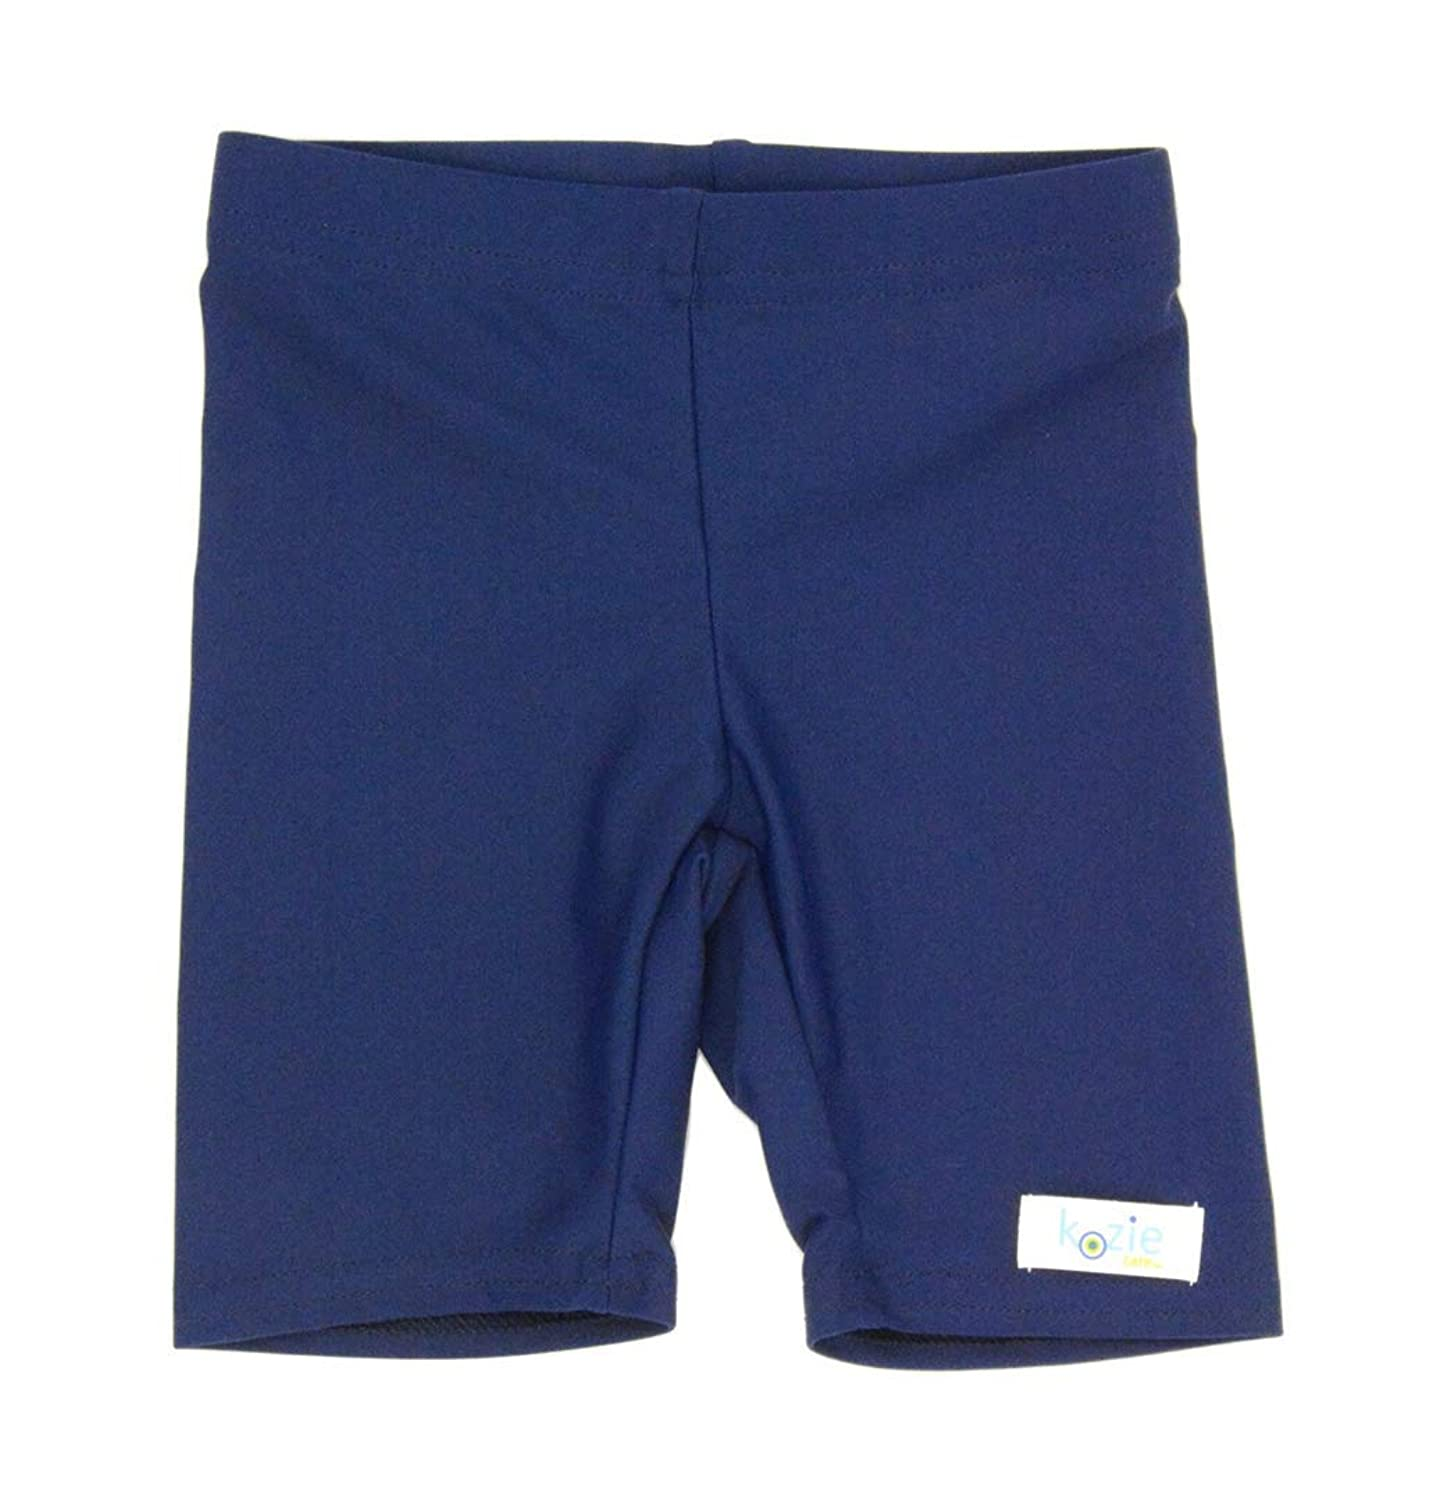 Kozie Clothes SHORTS ボーイズ